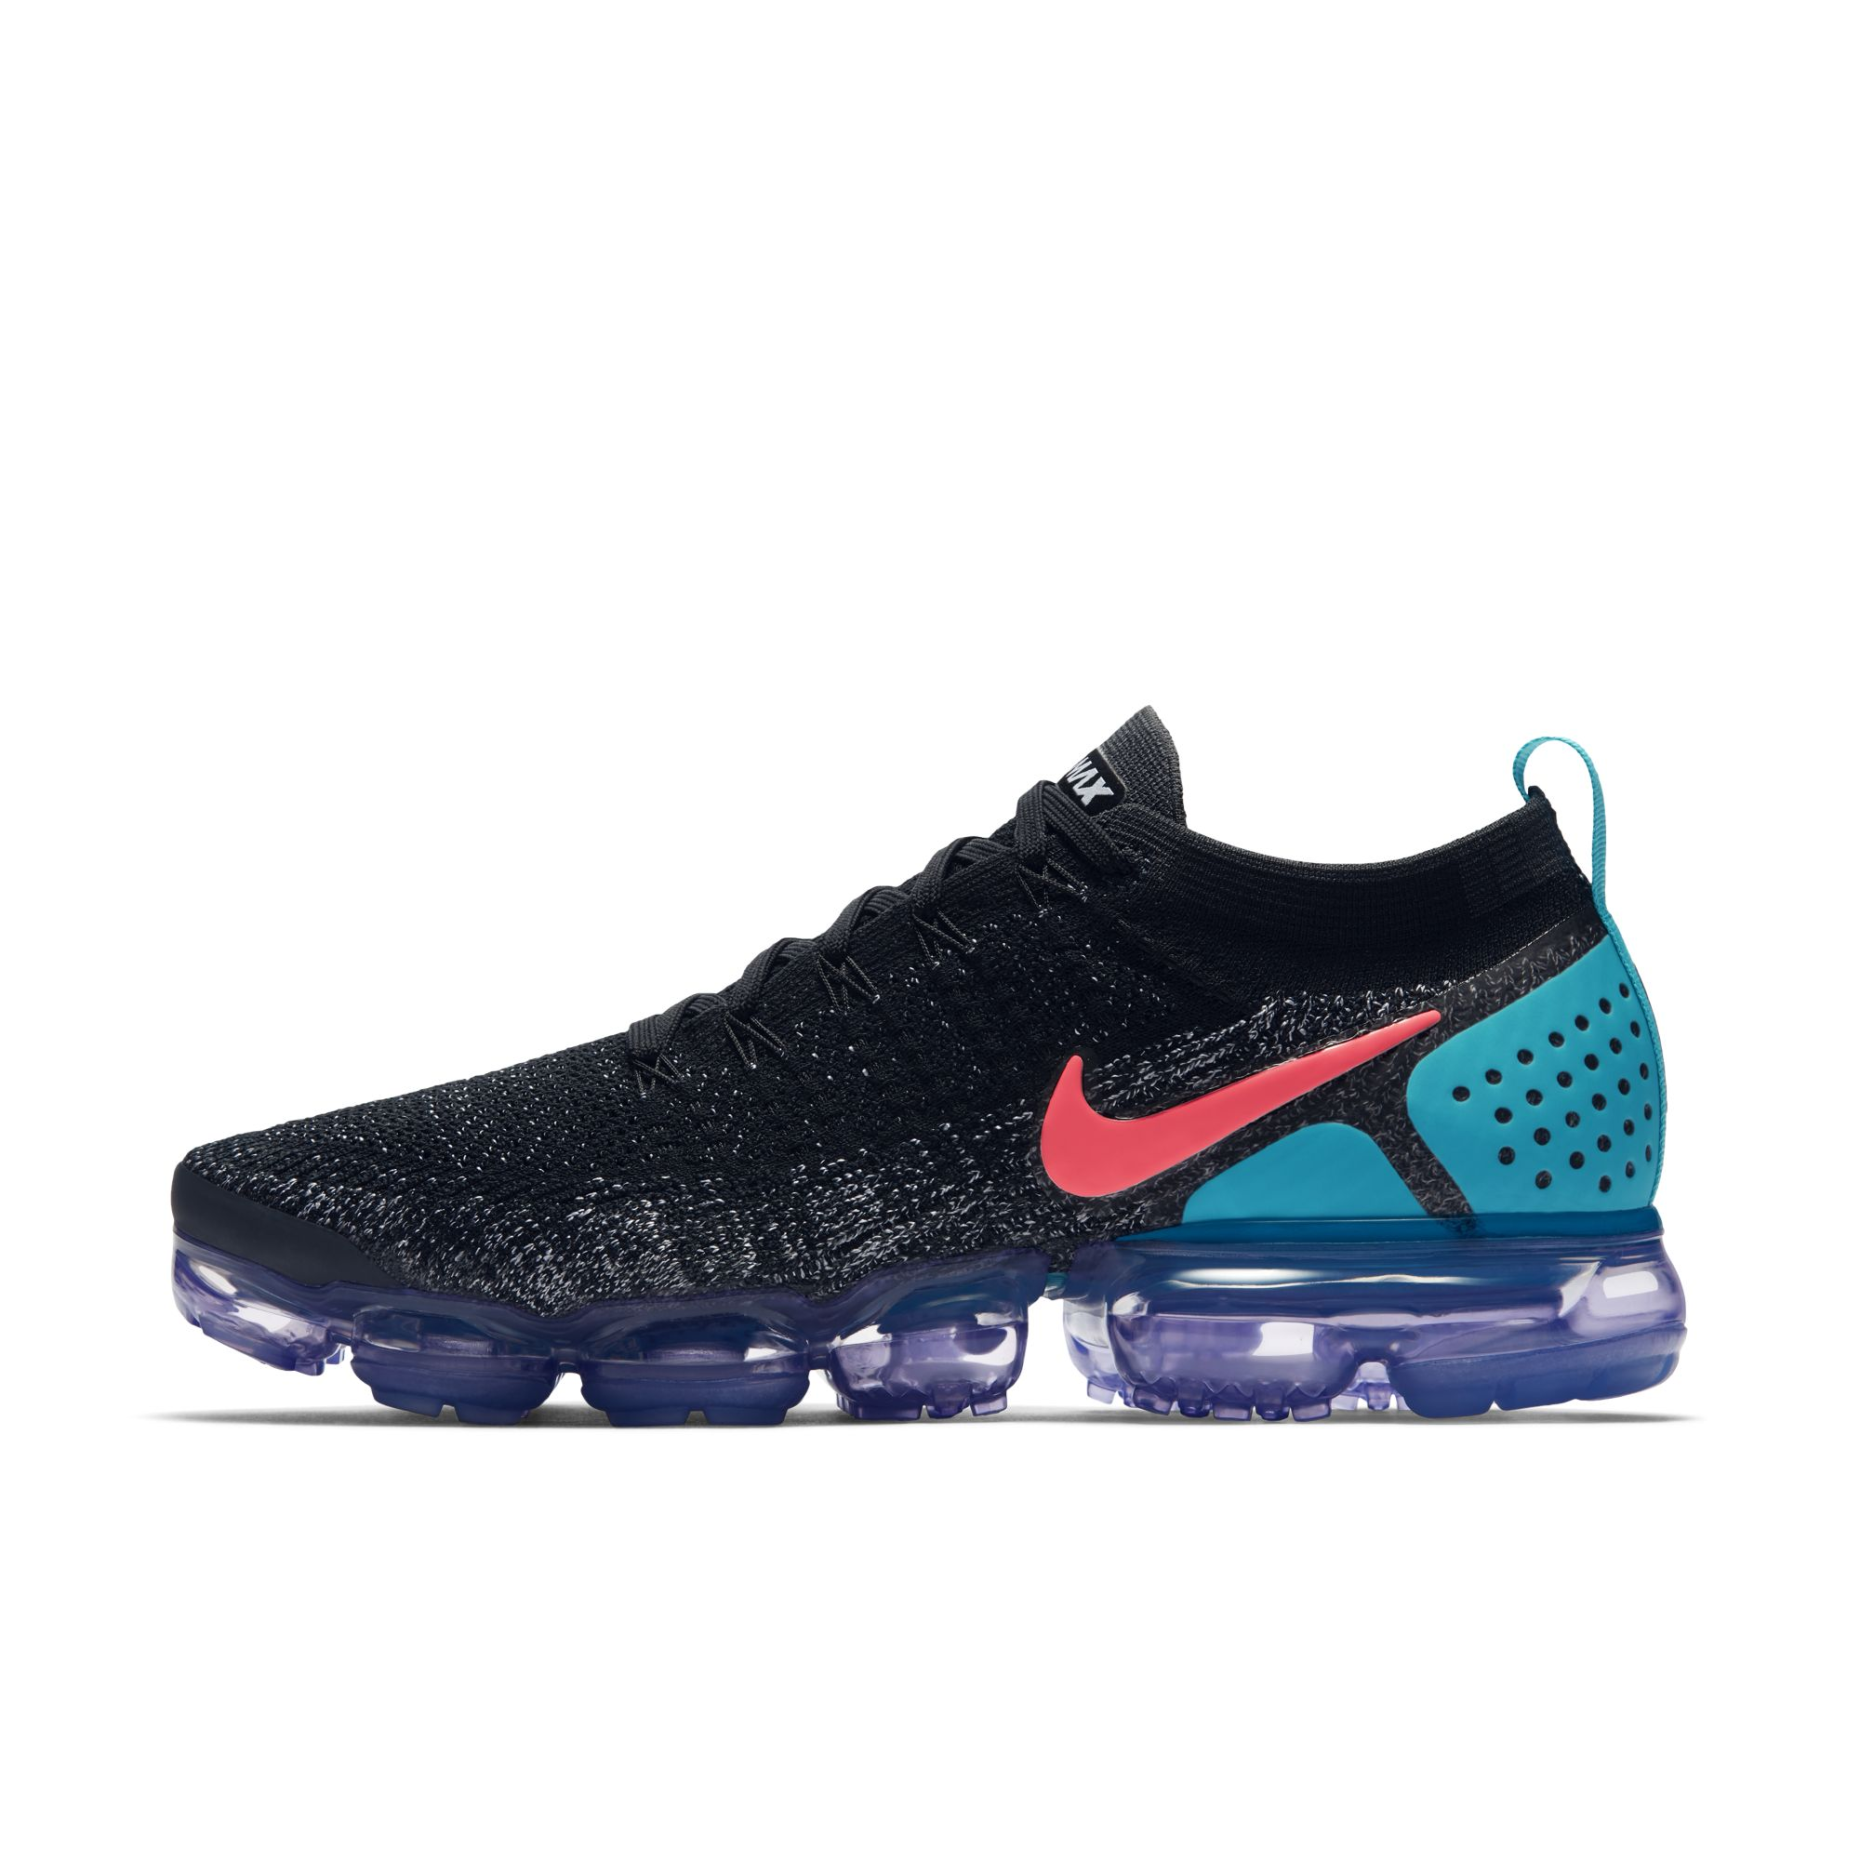 size 40 d2747 be90f Nike Air VaporMax Flyknit 2 Black Hot Punch 942842-003 1.png v 1535026991